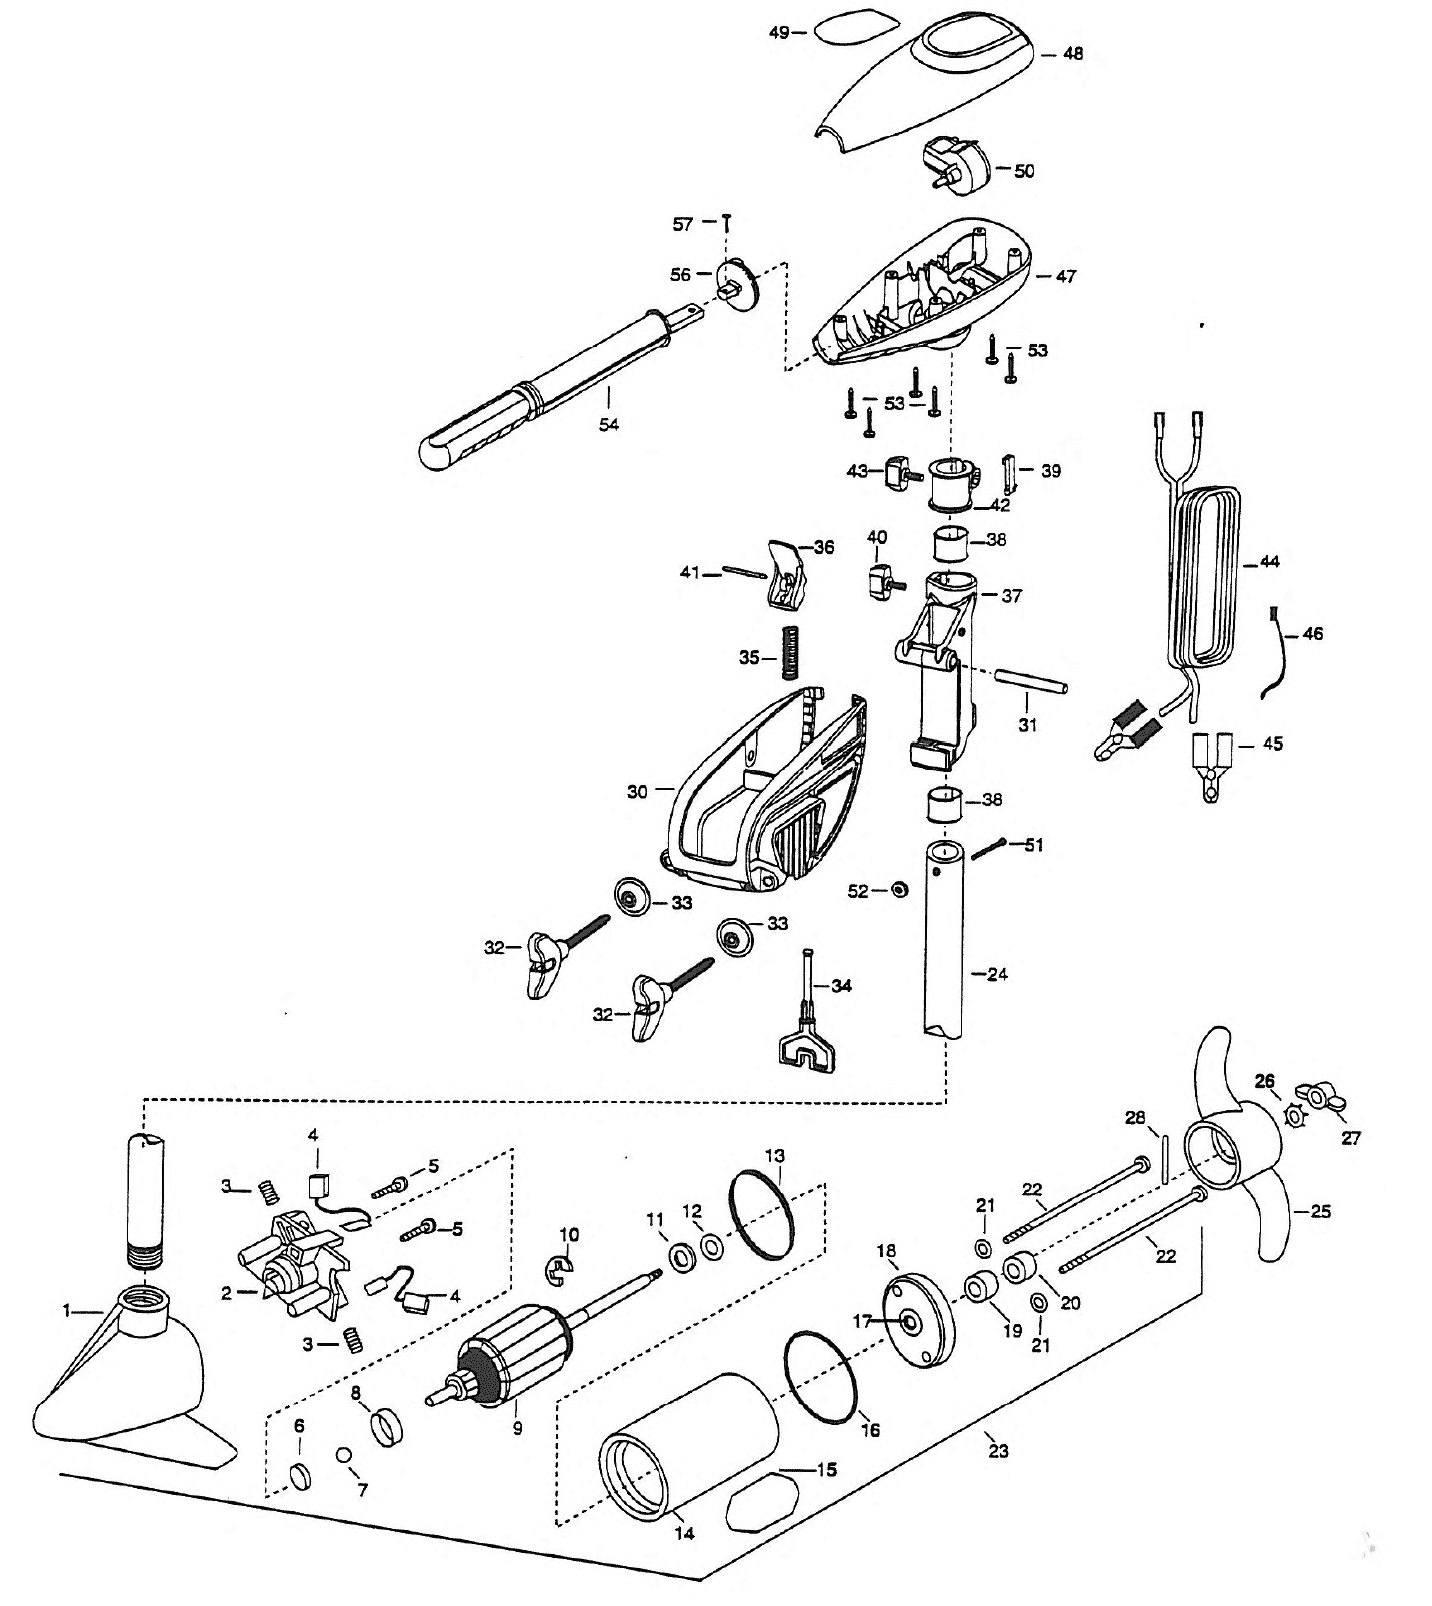 Wiring Diagram For Minn Kota Trolling Motors